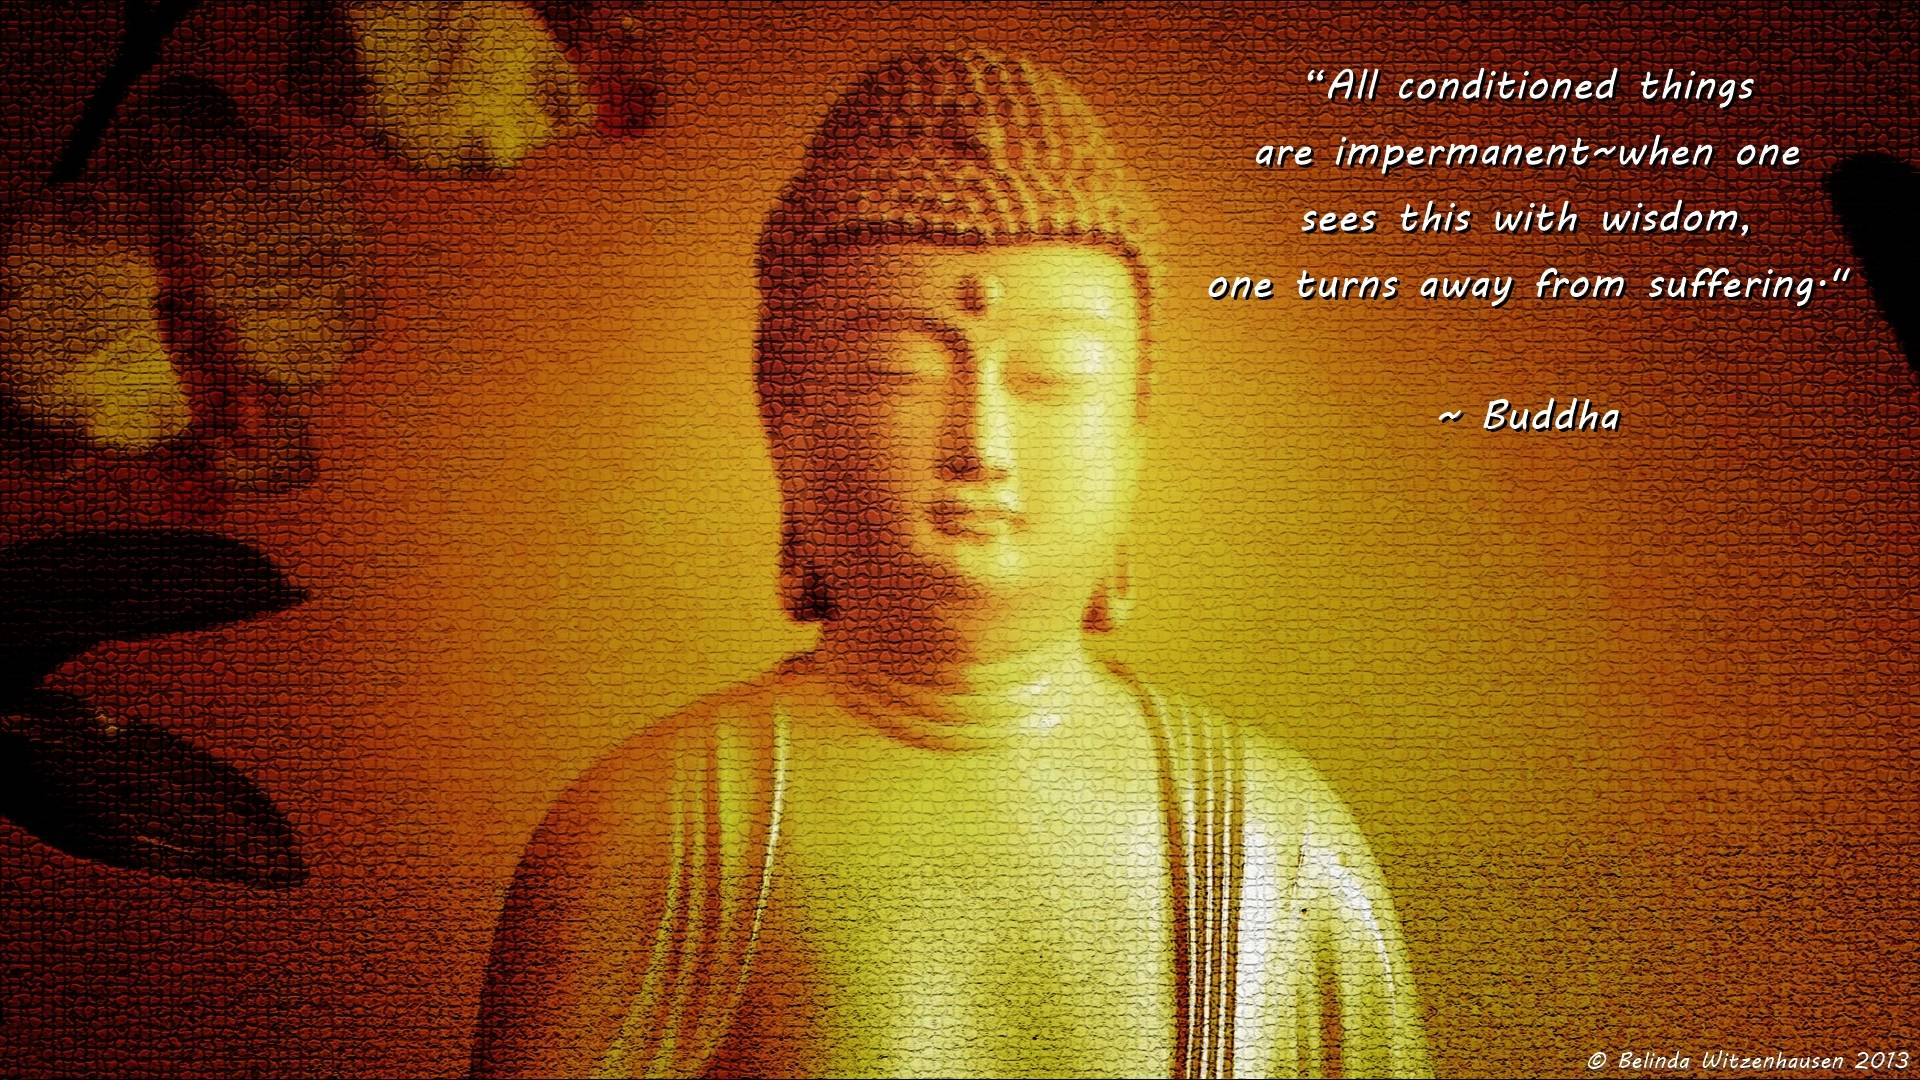 Buddha Quotes Wallpaper Desktop Buddha Quotes Wallpapers Wallpaper Cave